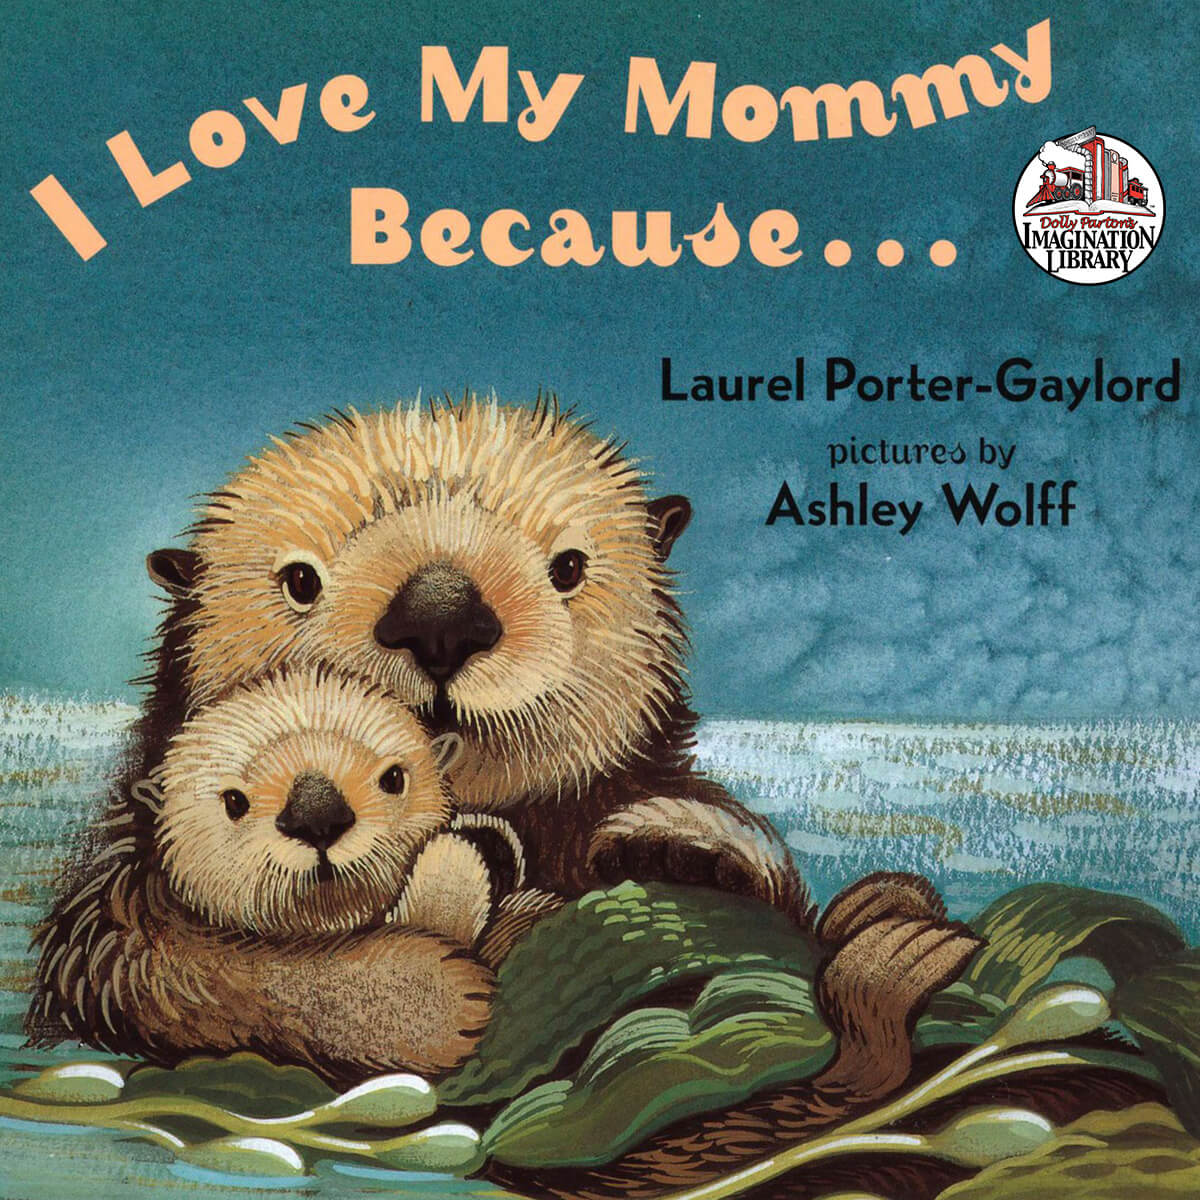 I Love My Mommy Because - Dolly Parton's Imagination Library